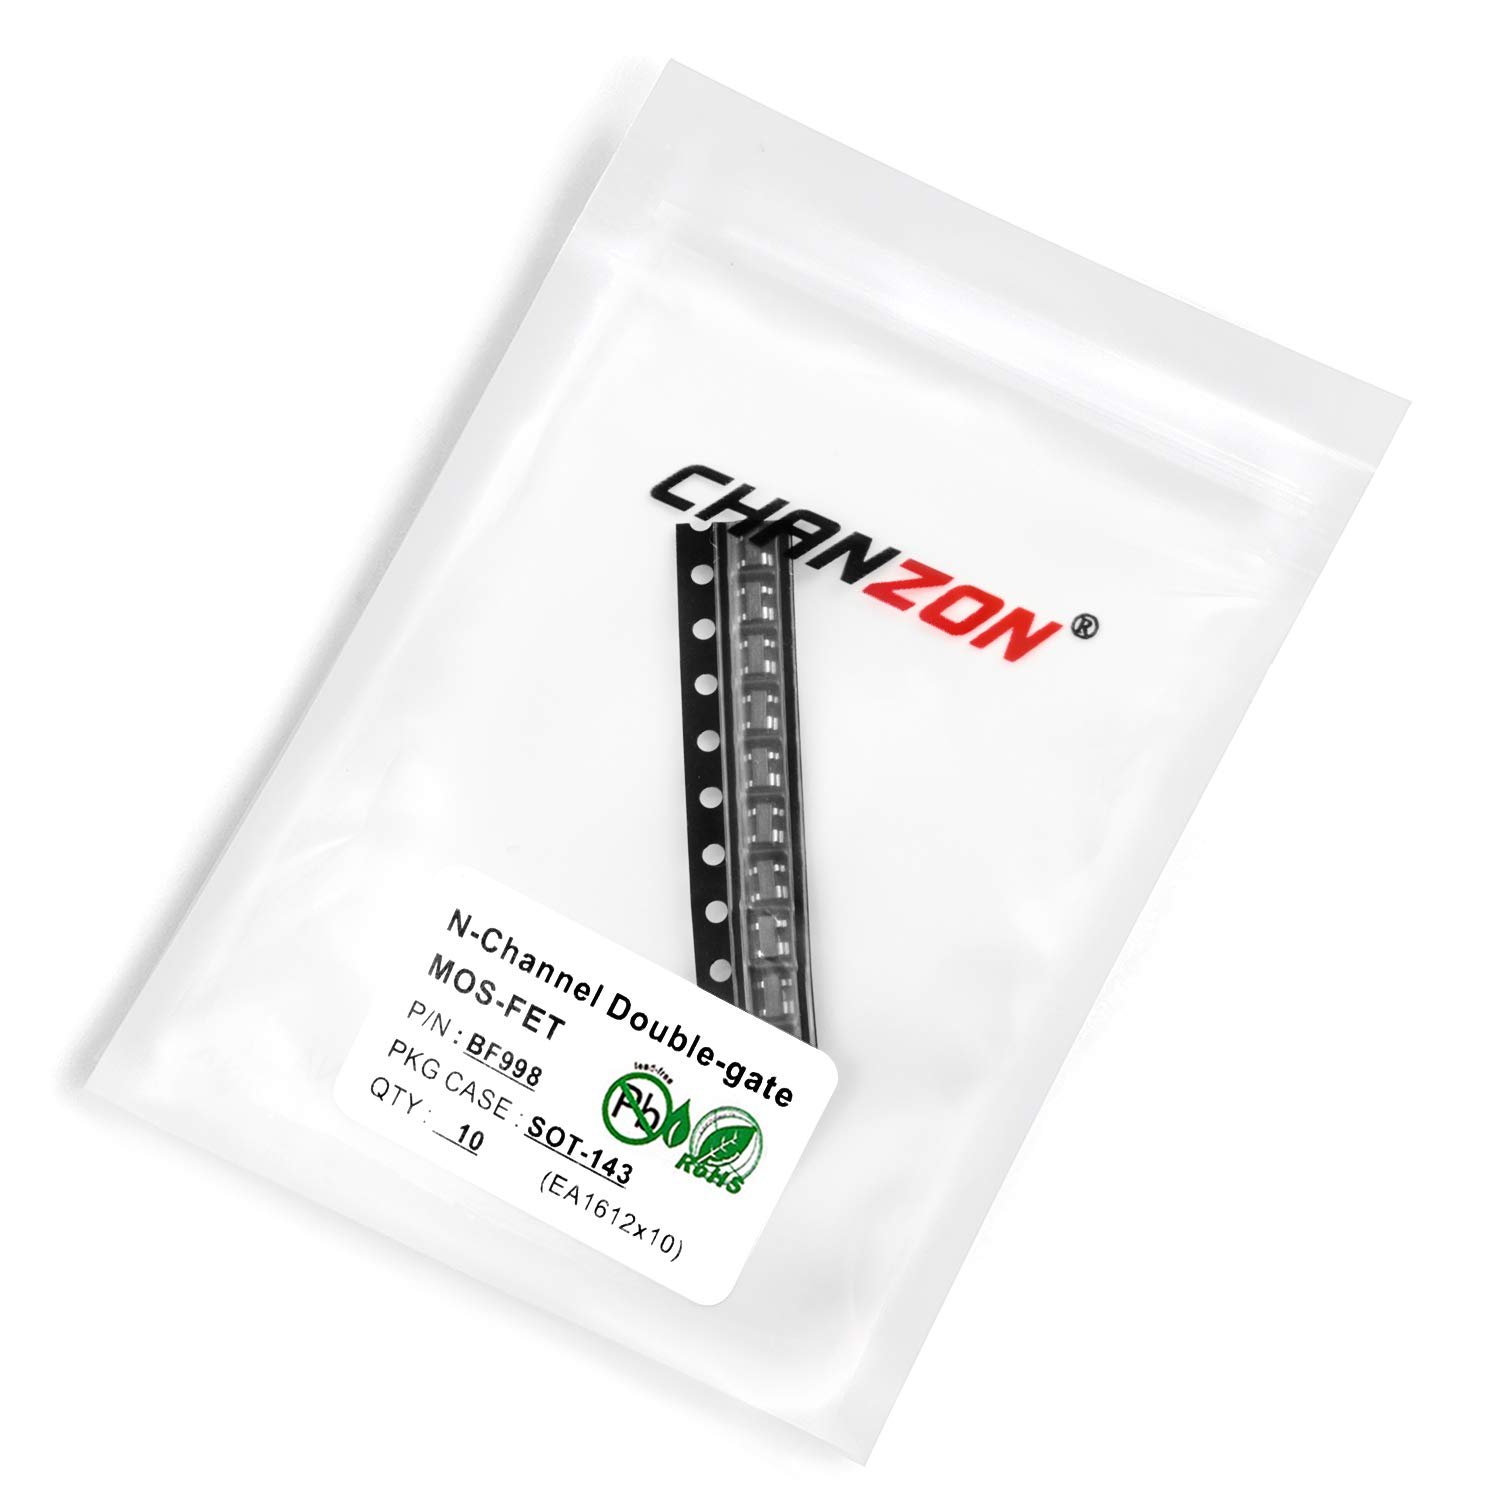 Chanzon 10pcs BF998 SOT-143 N-Channel Double-gate Sic MOSFET Transistor 30mA SMD